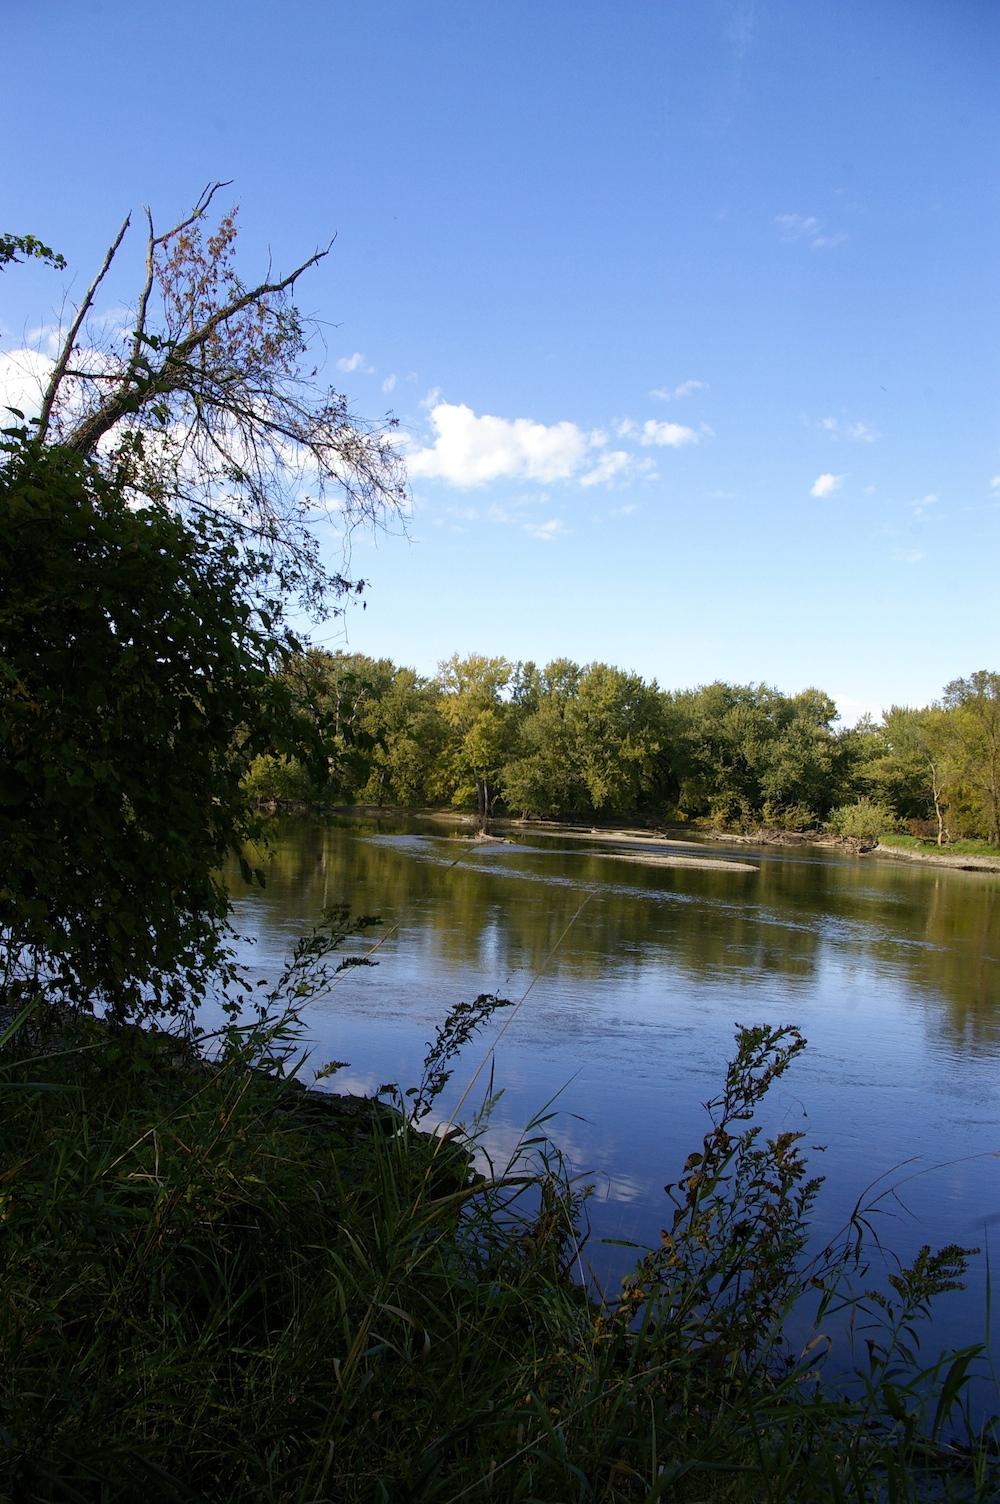 Scenic view of Rock River in Rockton, Illinois